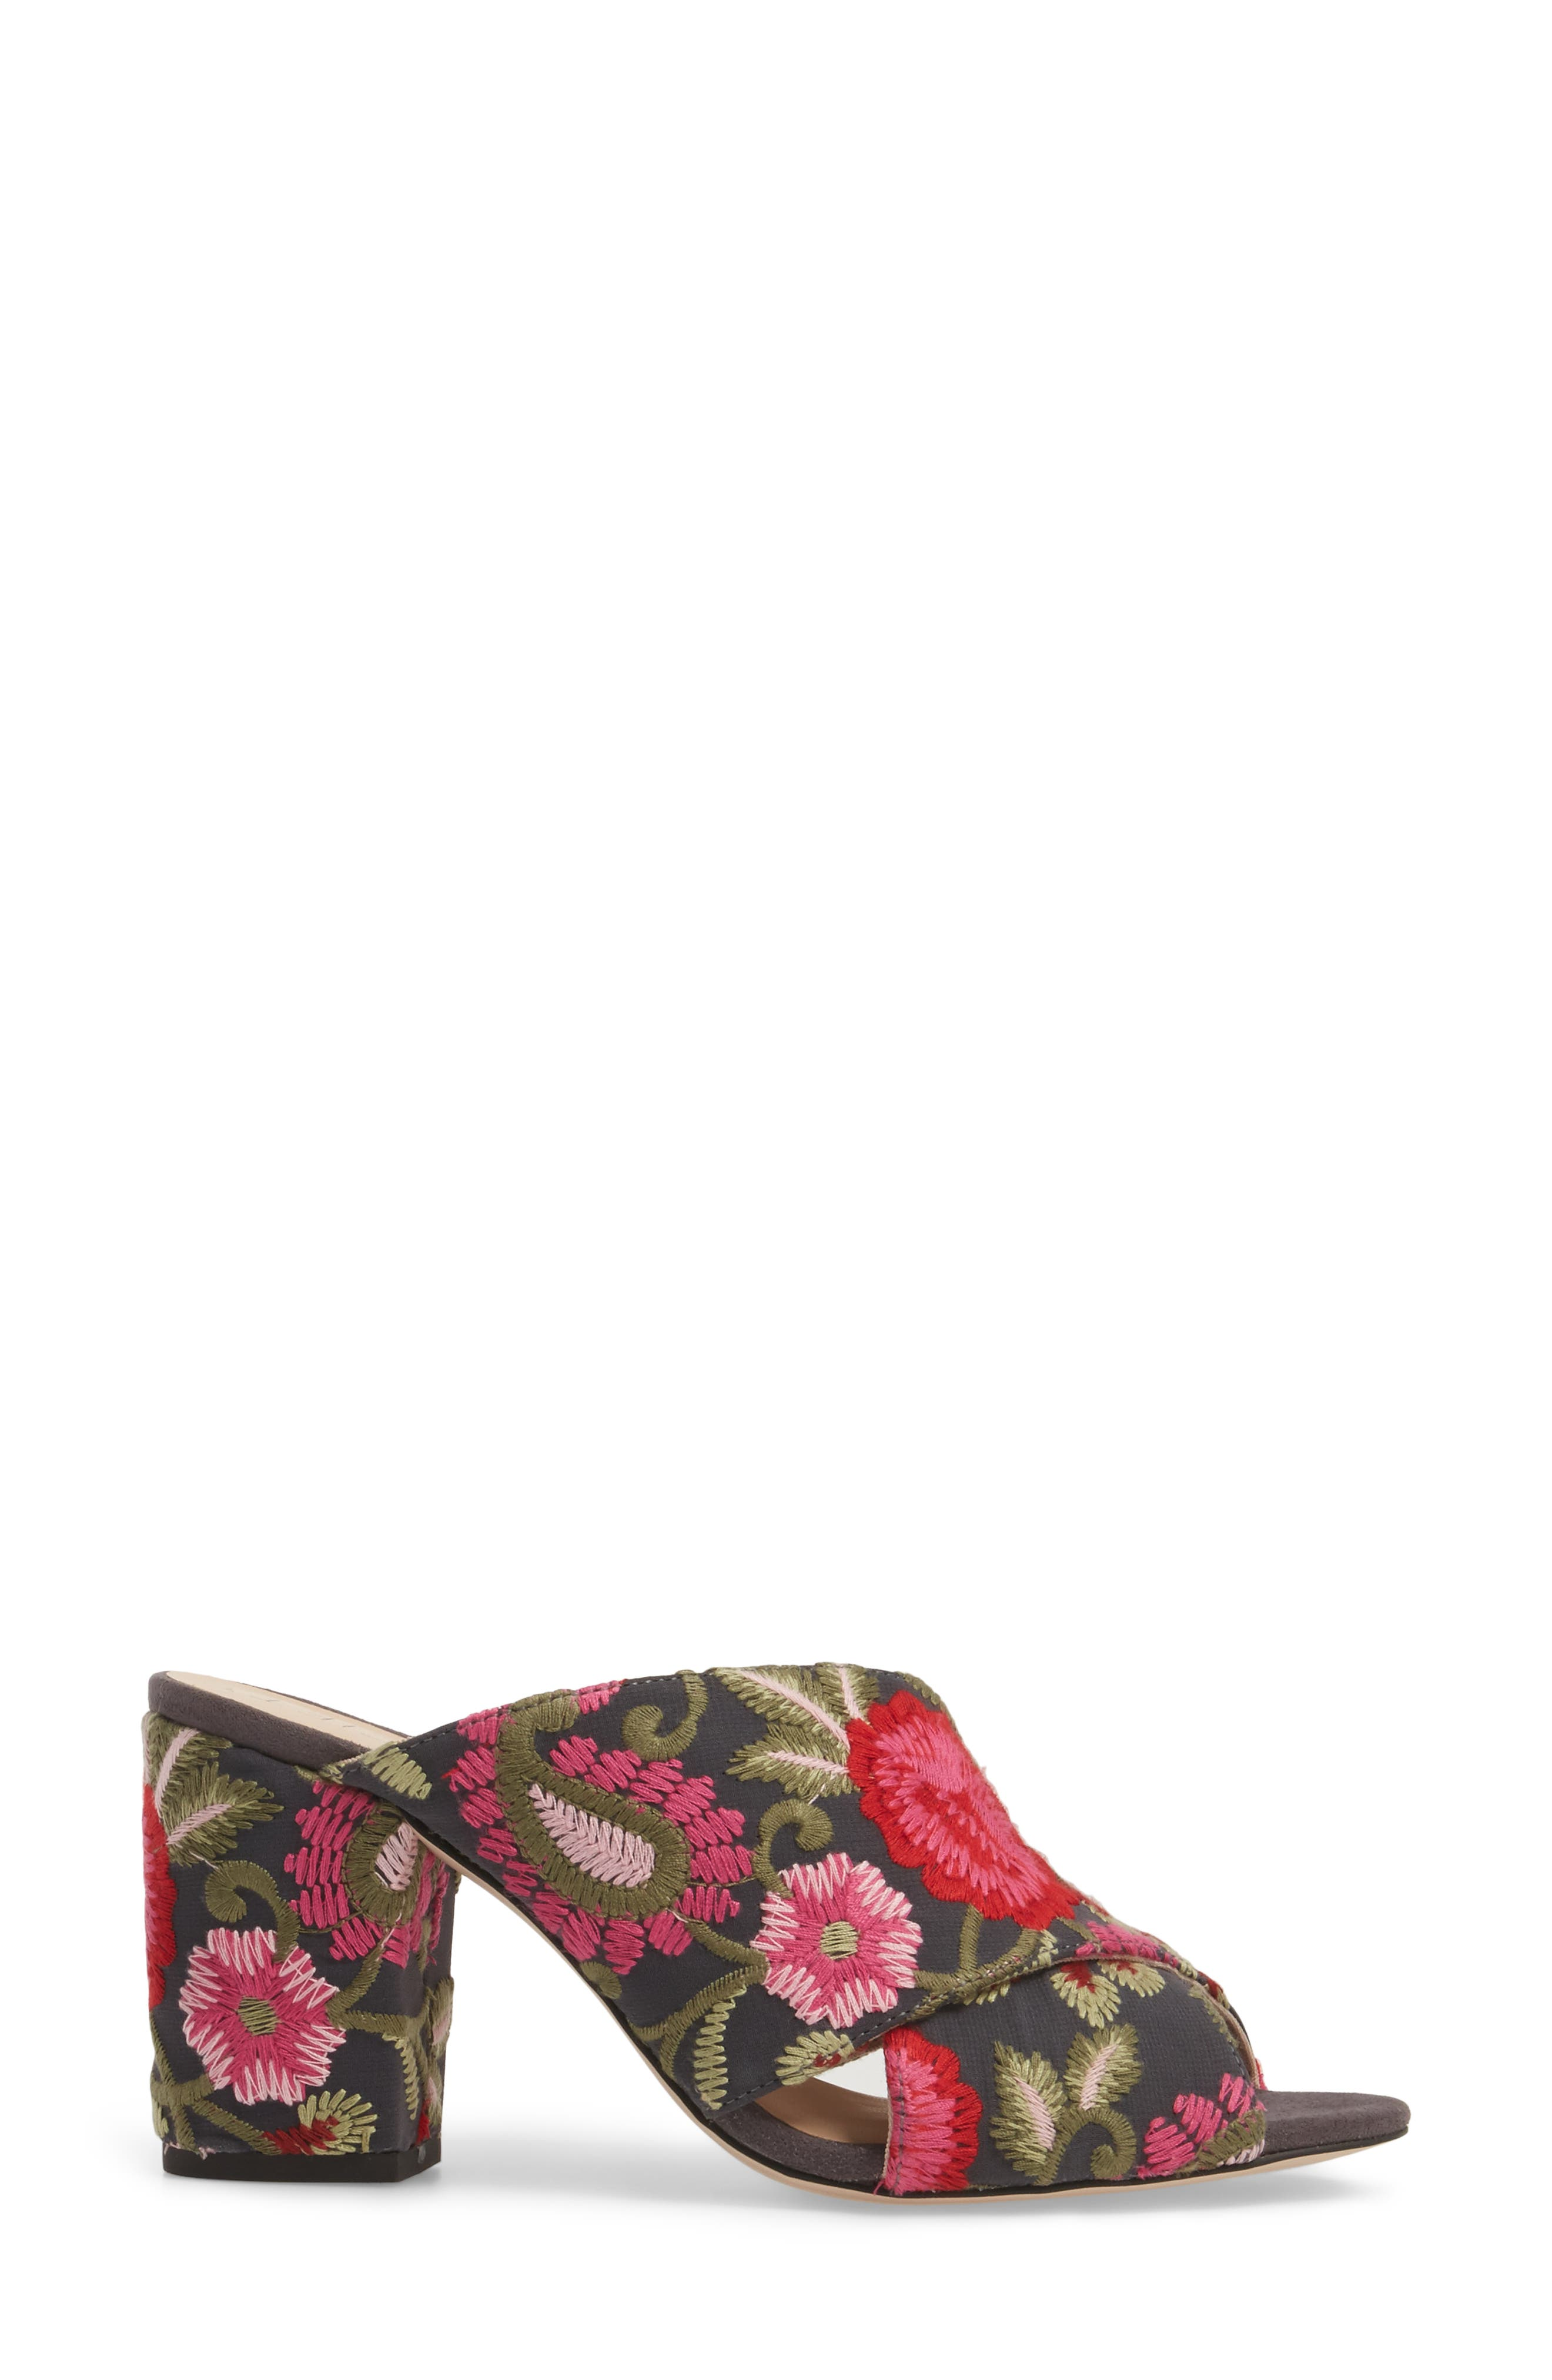 Luella Flower Embroidered Slide,                             Alternate thumbnail 22, color,